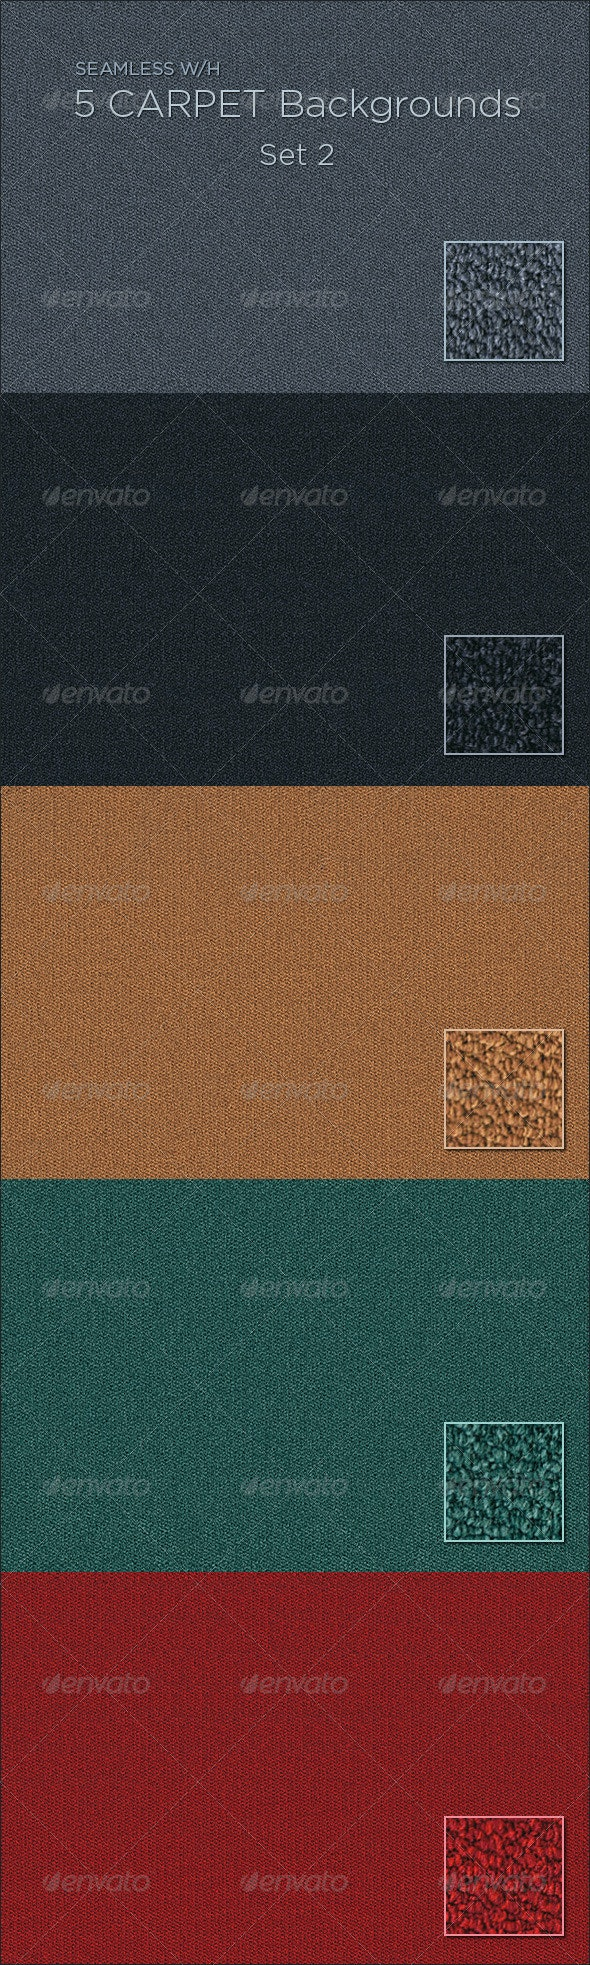 Backgrounds Set 2 / Carpets and Rugs